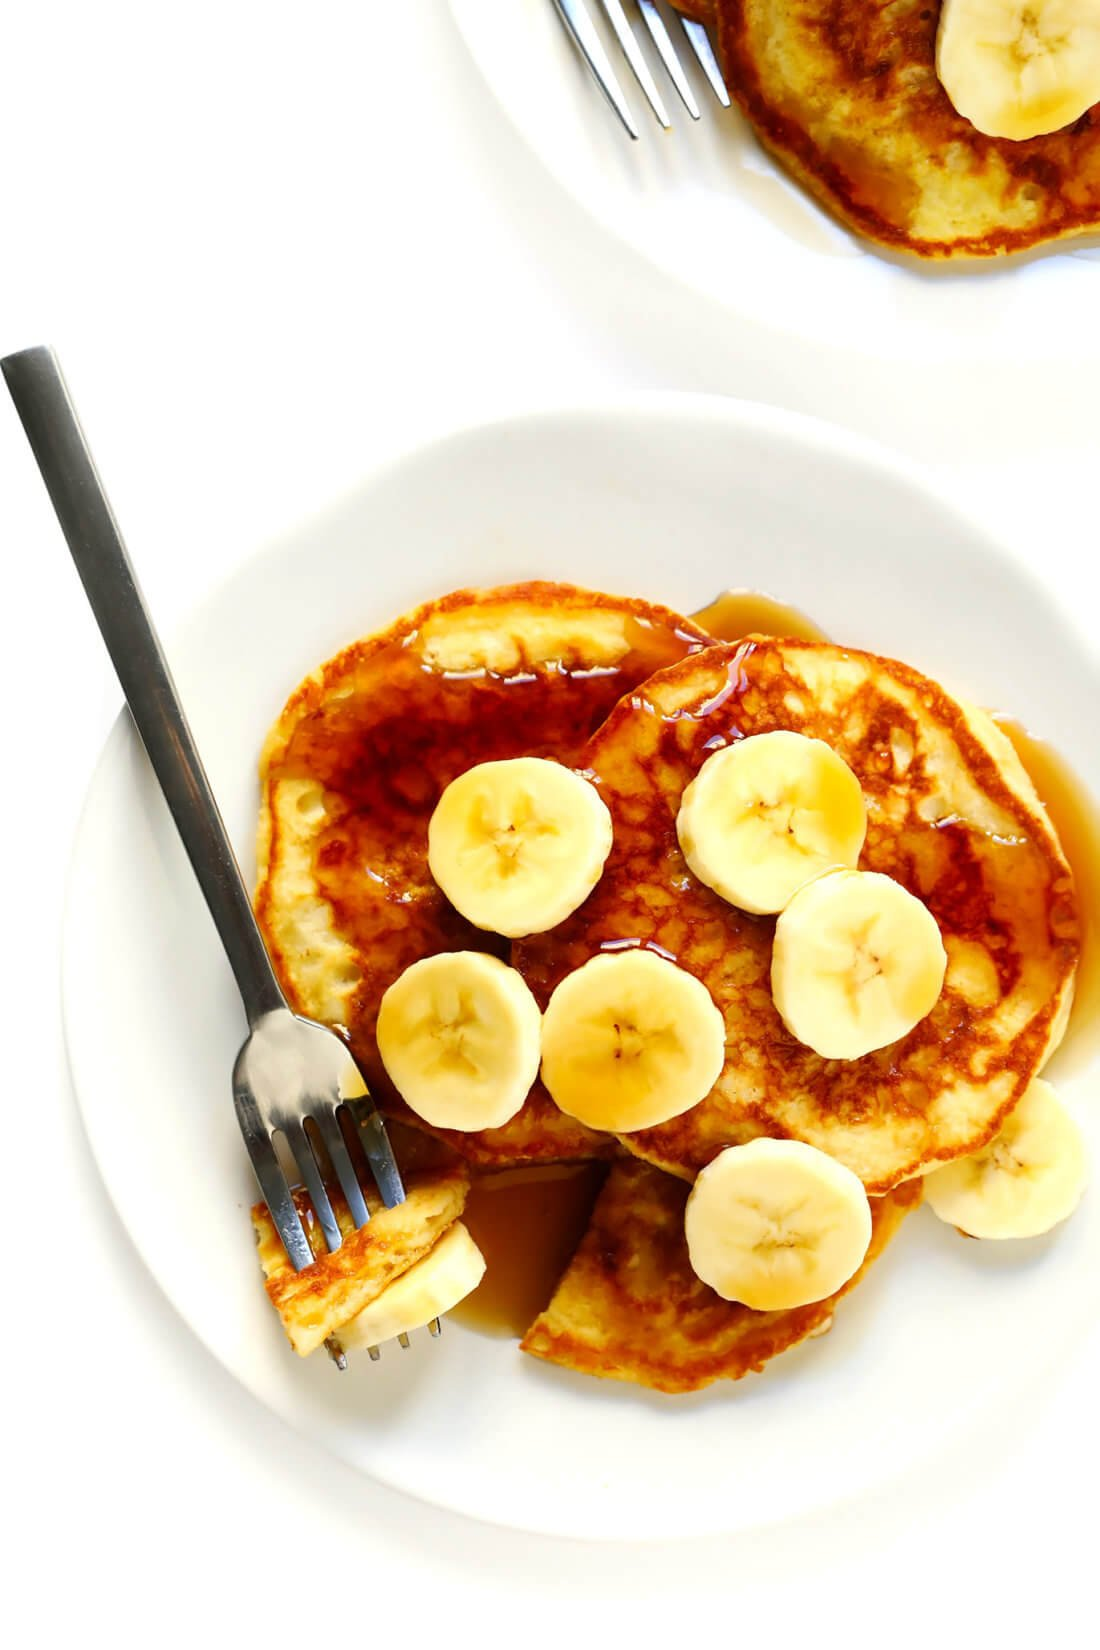 Buttermilk Pancakes Recipe with Bananas